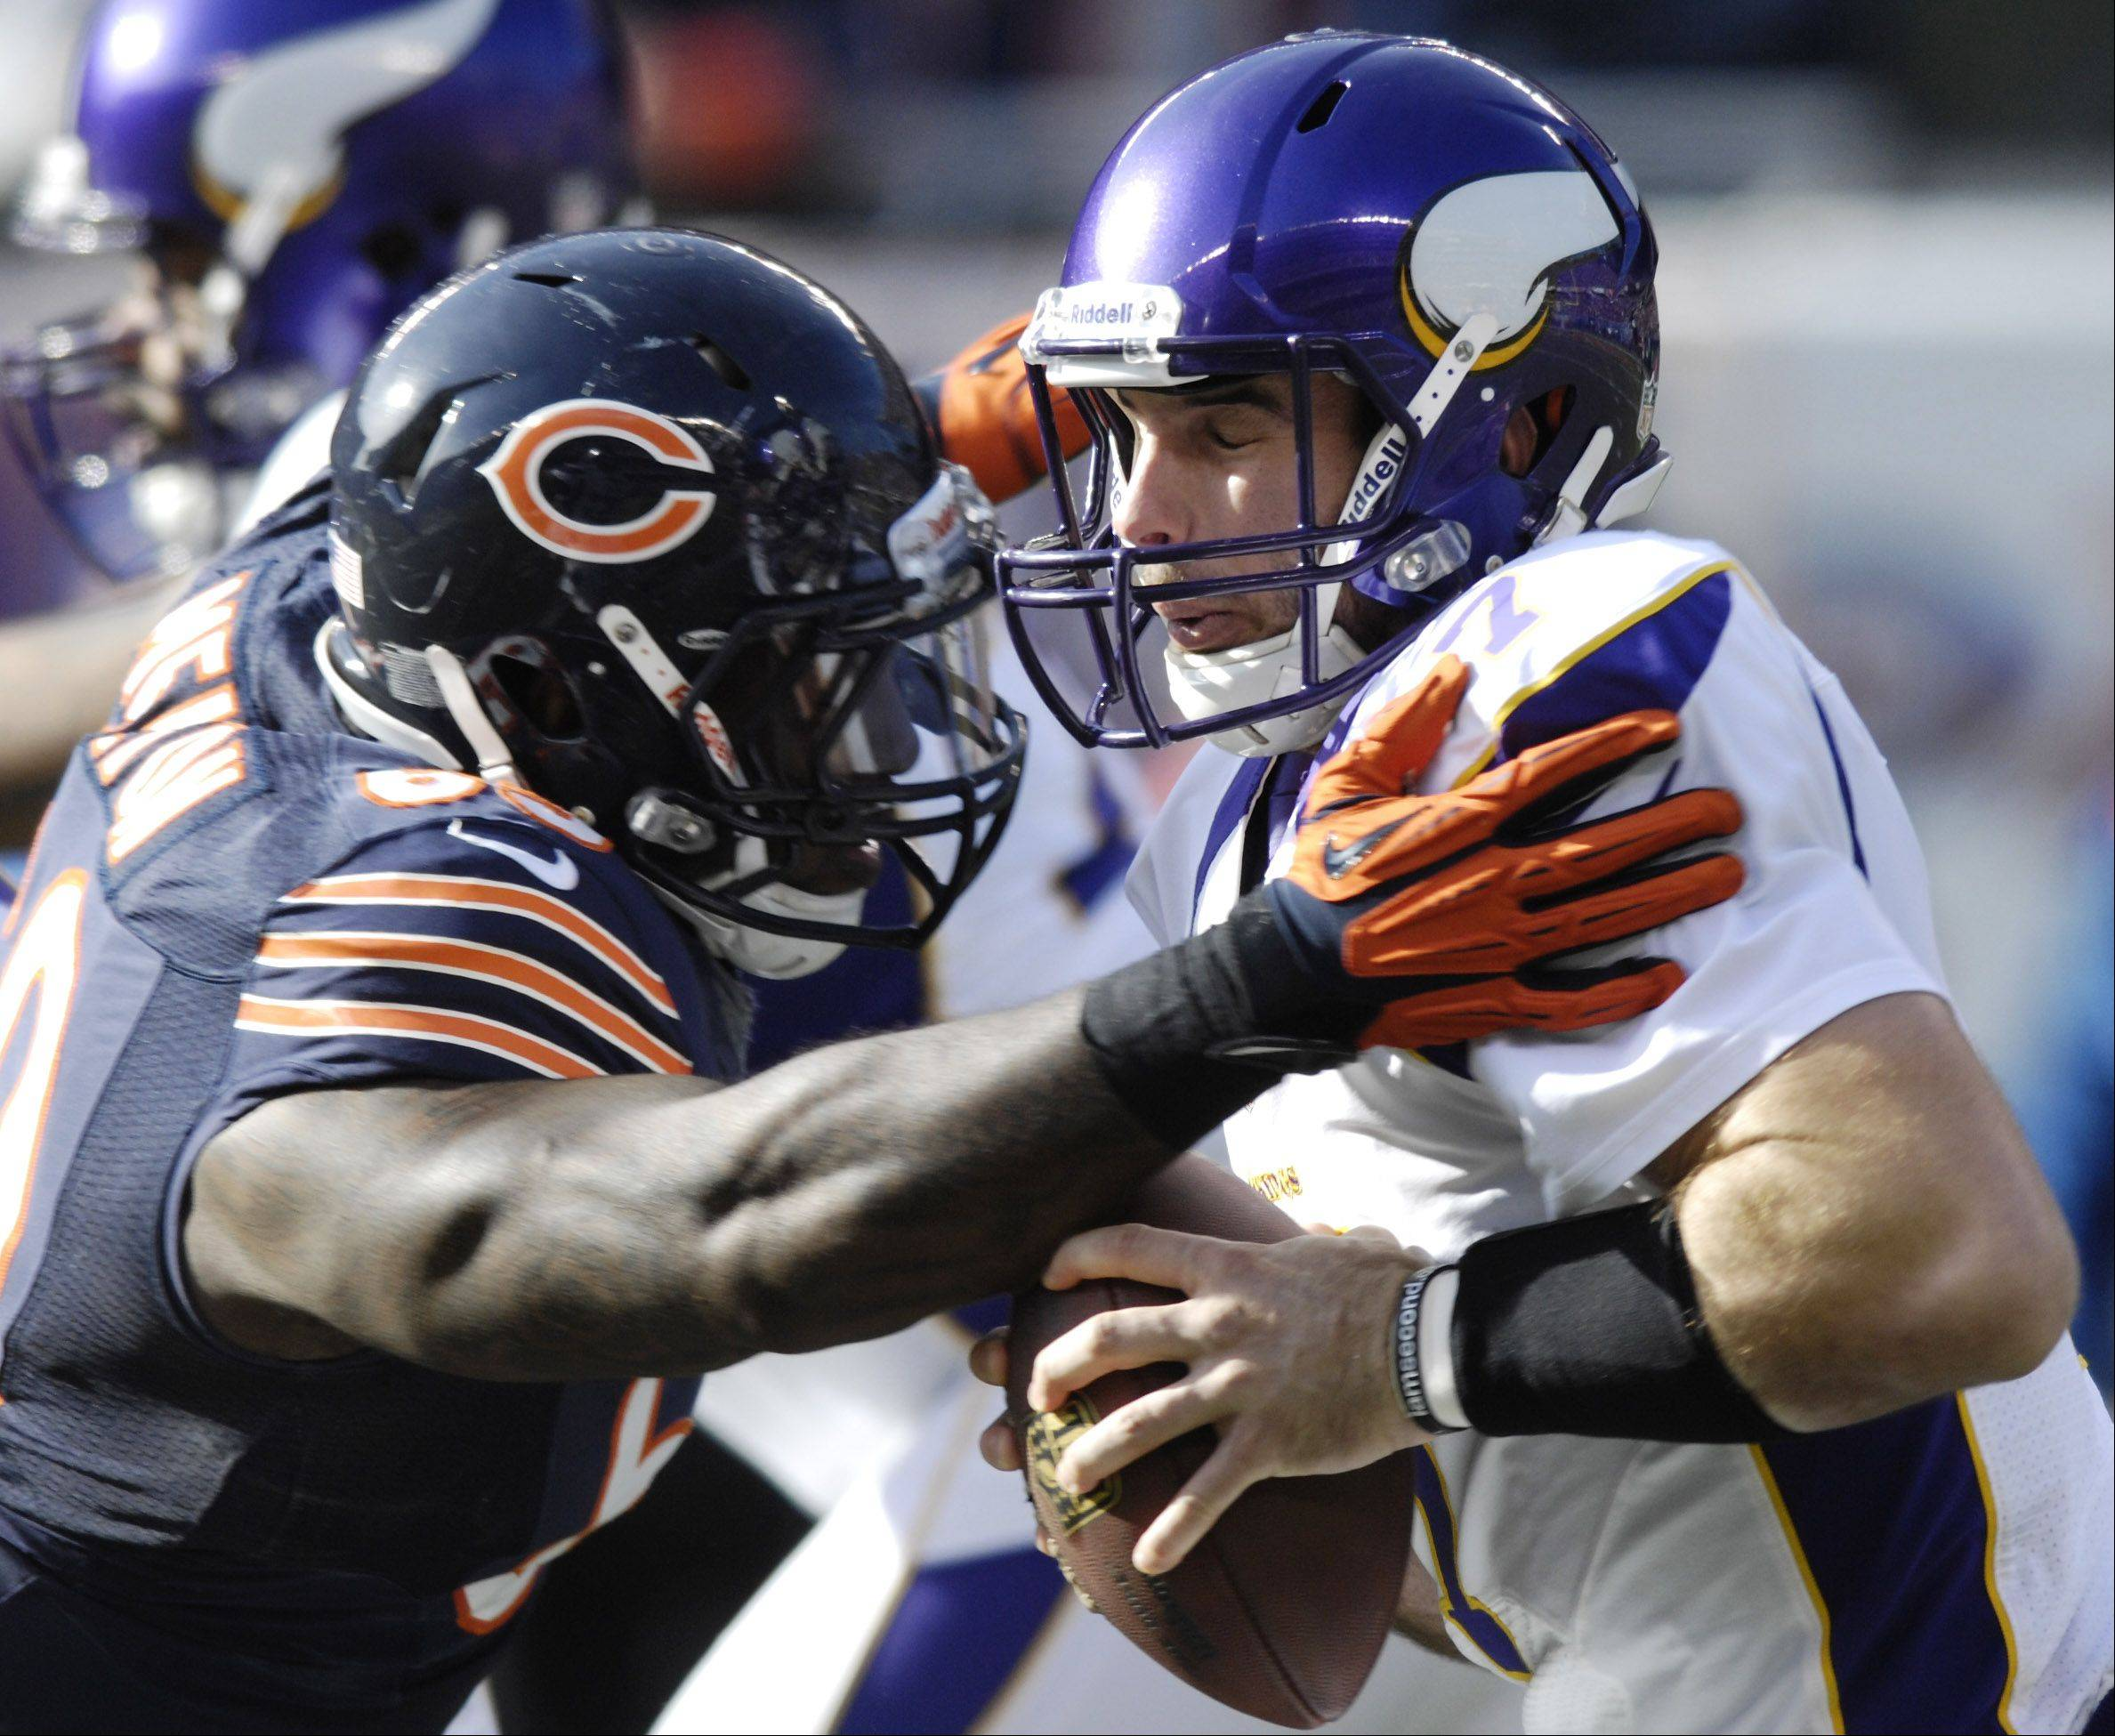 Bears defensive tackle Henry Melton sacks Minnesota Vikings quarterback Christian Ponder at Soldier Field. The Bears face the Vikings Sunday.